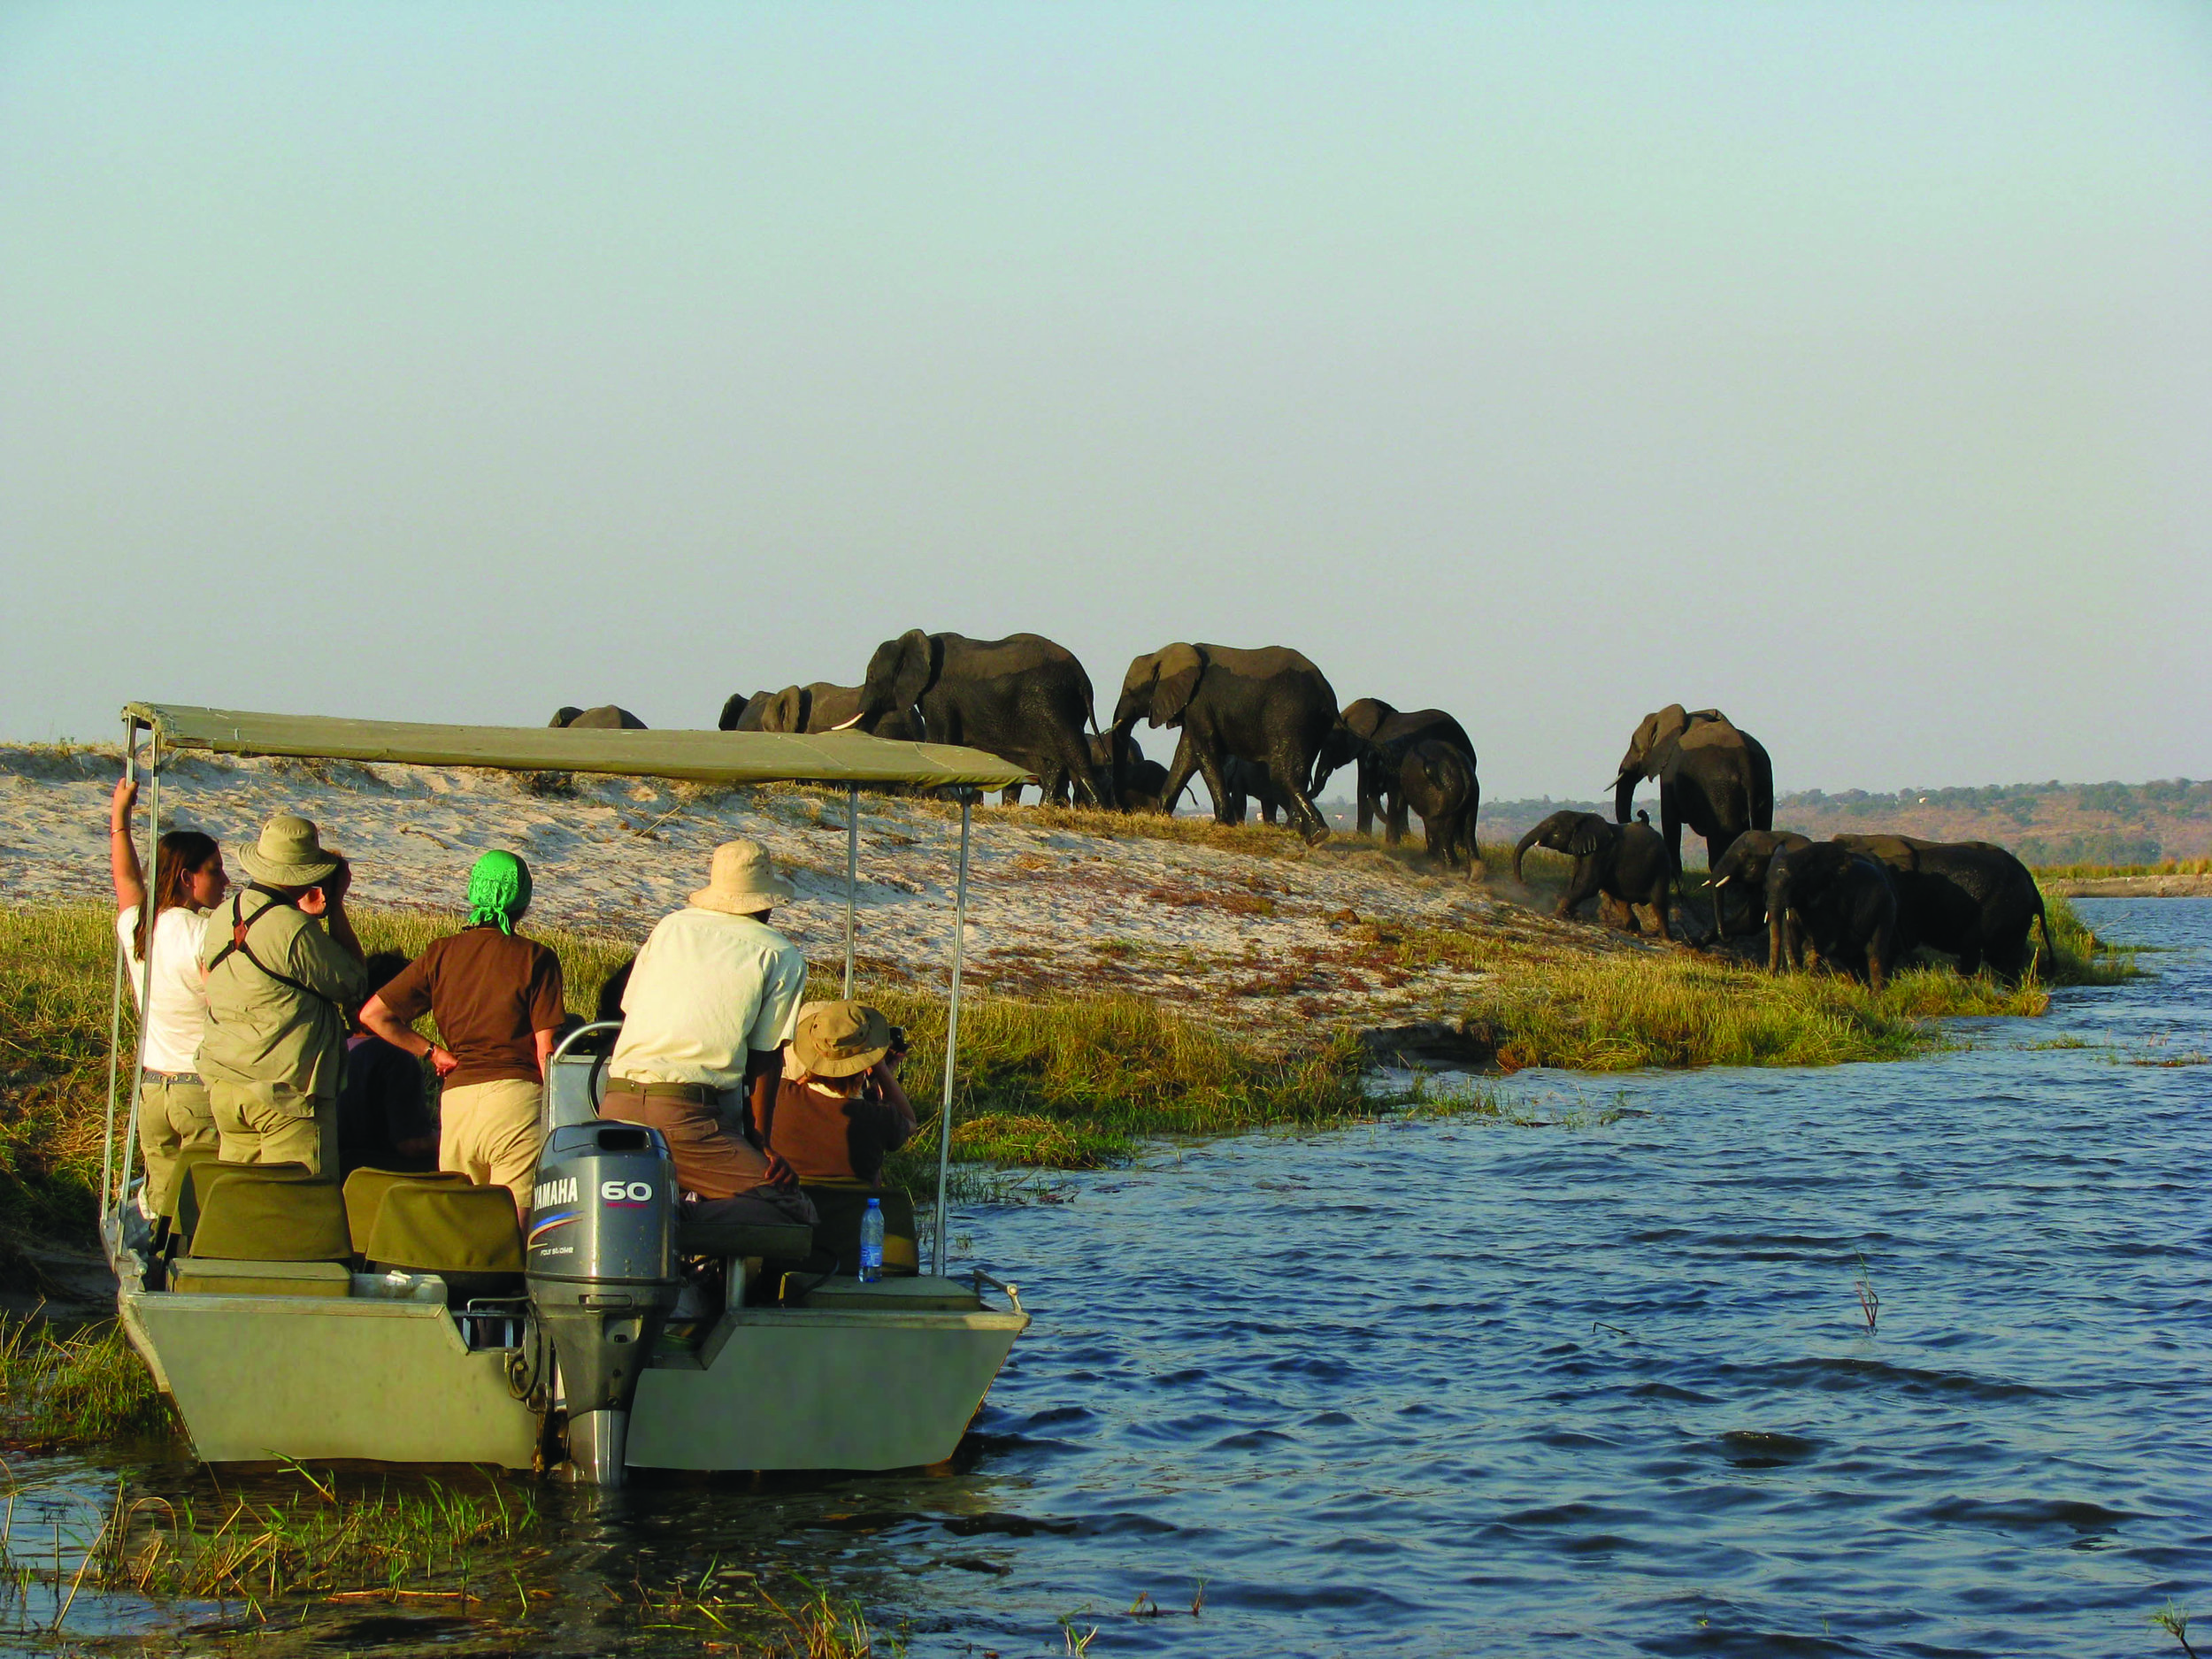 AmaWaterways offers private boat safaris along the Chobe riverbank.